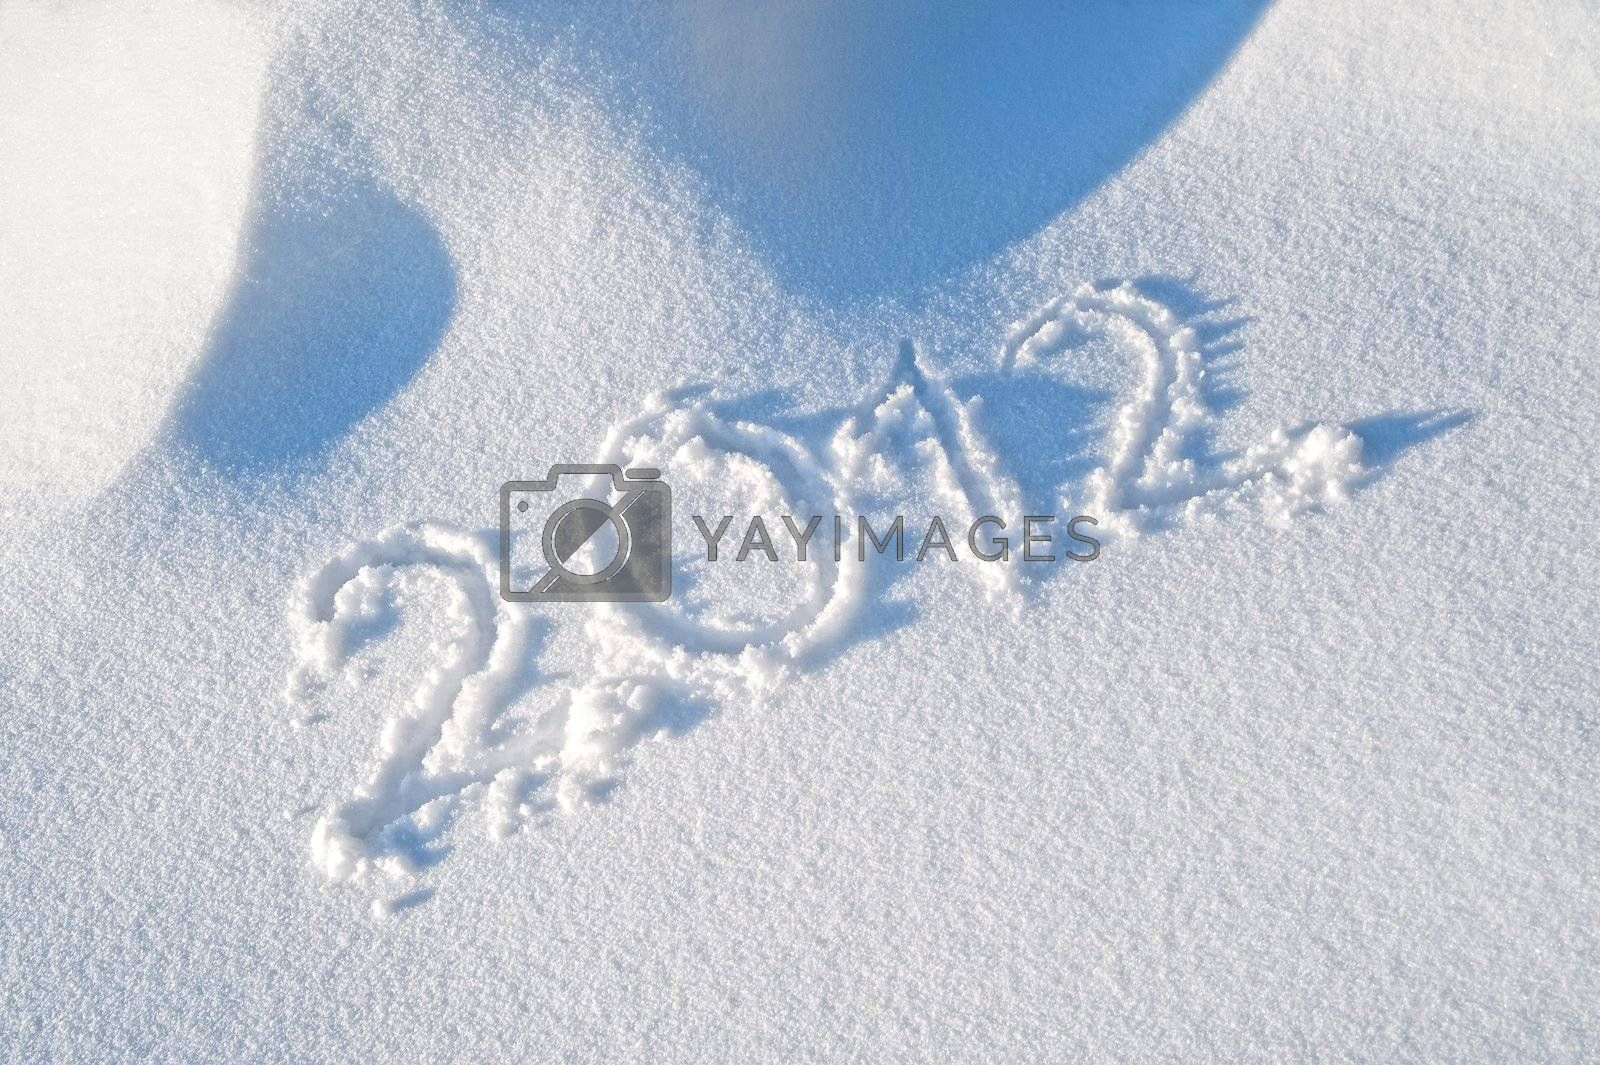 Royalty free image of Year 2012 written in the Snow by tepic